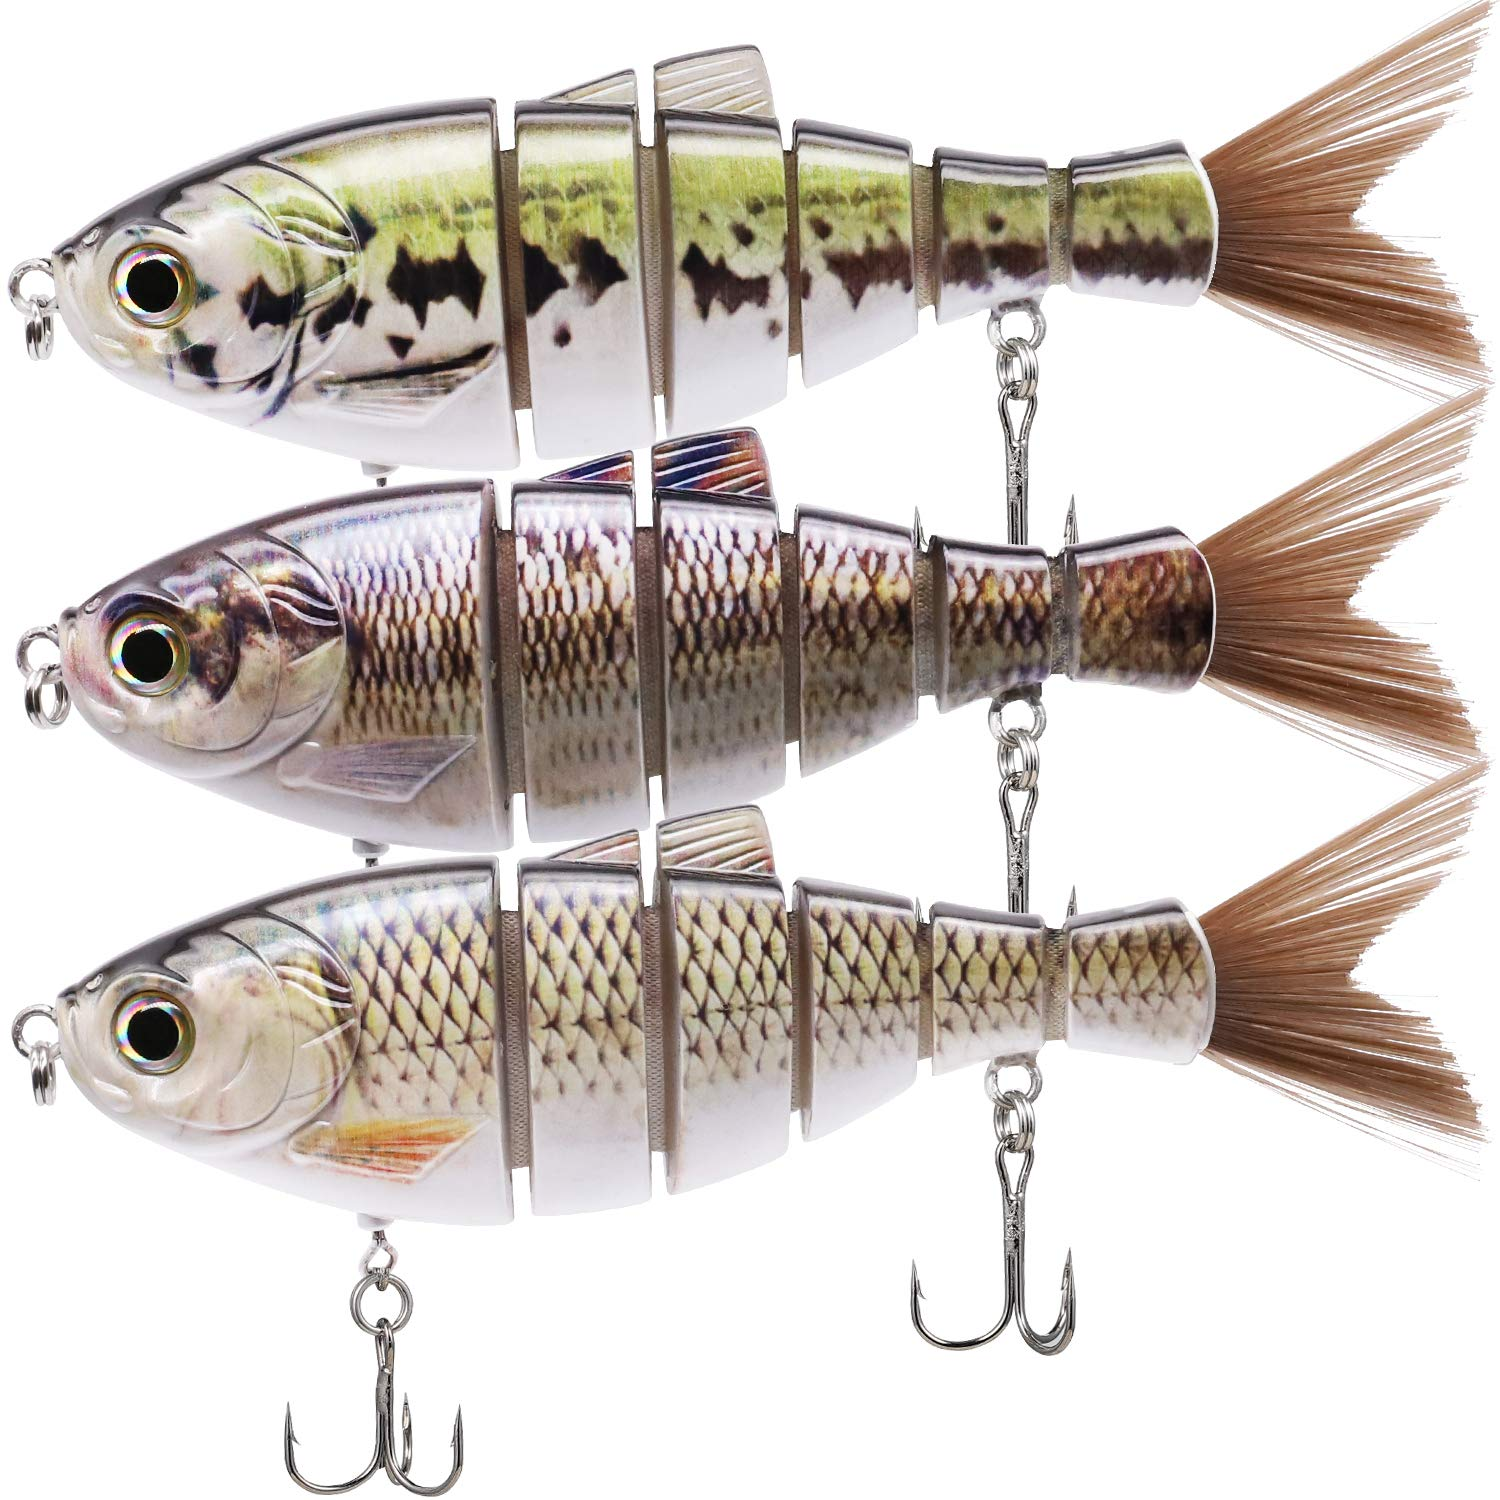 TRUSCEND Fishing Lures 6'' ~ 7'' Saltwater Freshwater Heavy-Duty Metal Jointed Swimbaits Glidebaits Hard Lures for Bass Catfish Pike Muskie Large Fish Lures Fishing Tackle Kits Lifelike (Combination F) by TRUSCEND